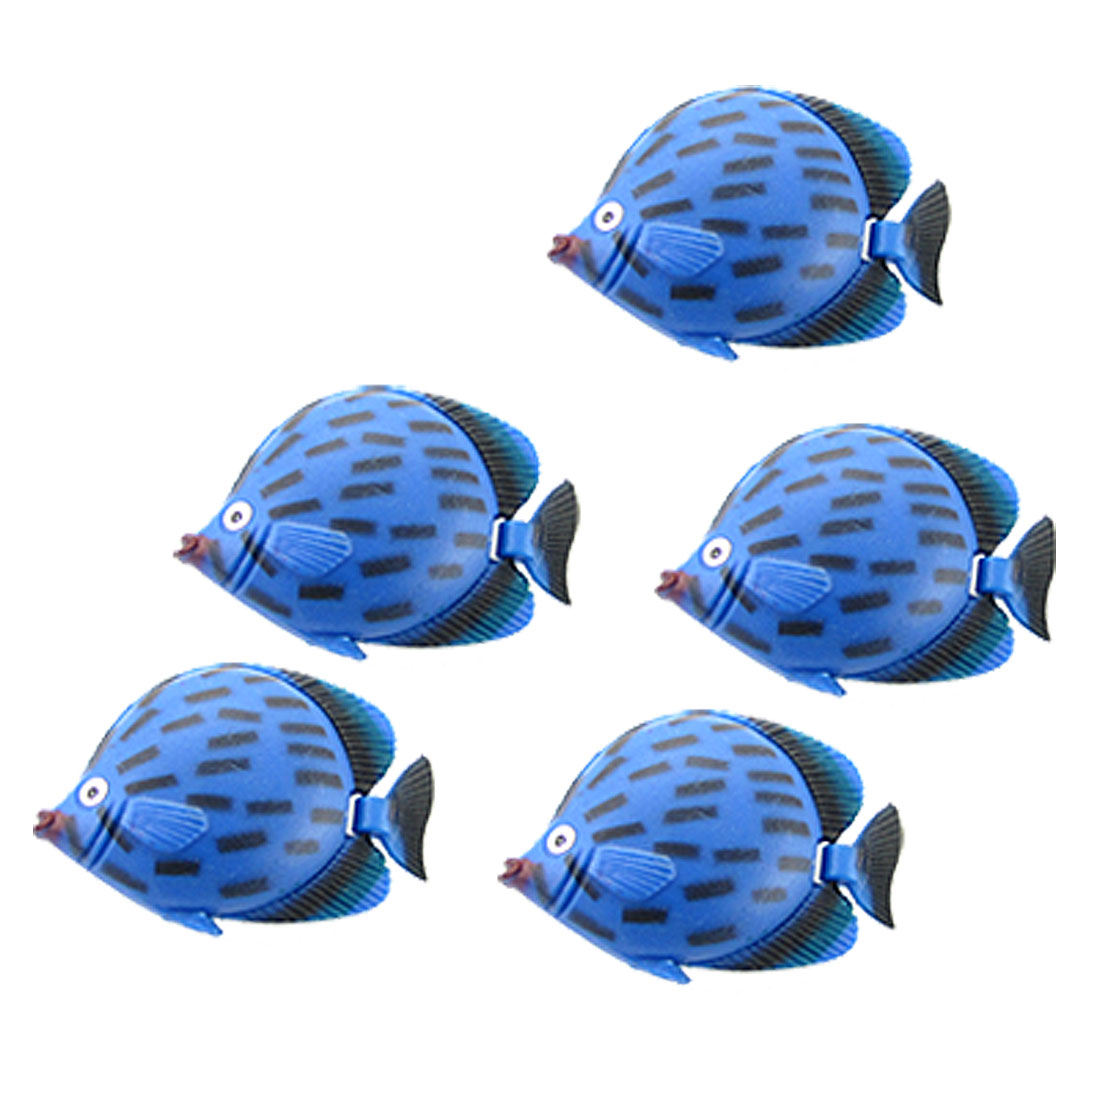 5pcs Blue Vivid Plastic Fish Aquarium Fish Tank Decor Ornament